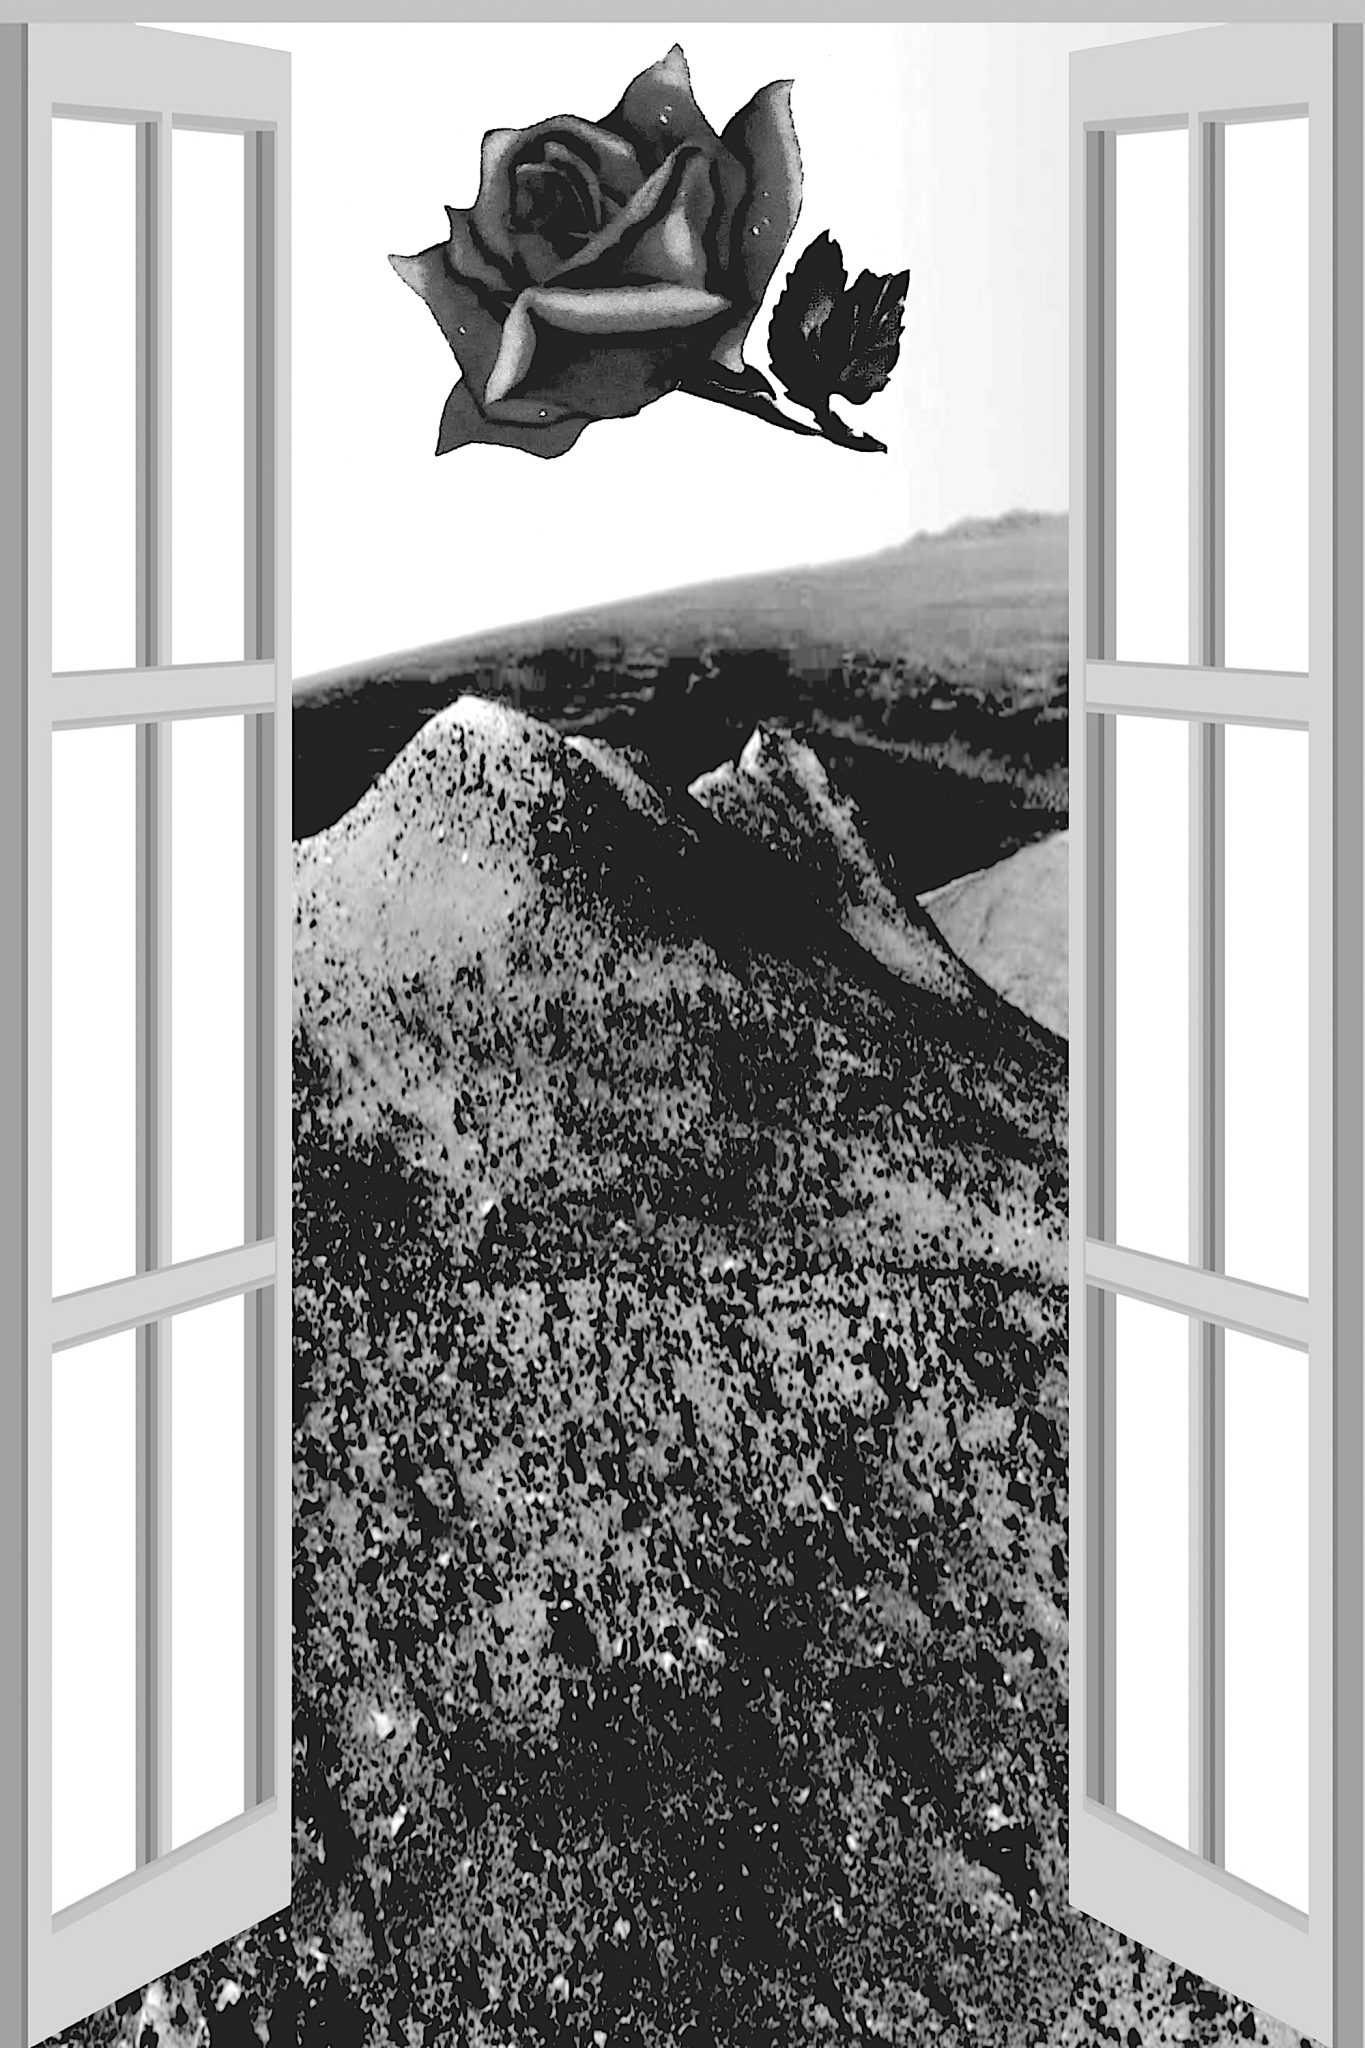 Window to Hell 𝑏𝑦 Atticus Davis/Savage Ckhild